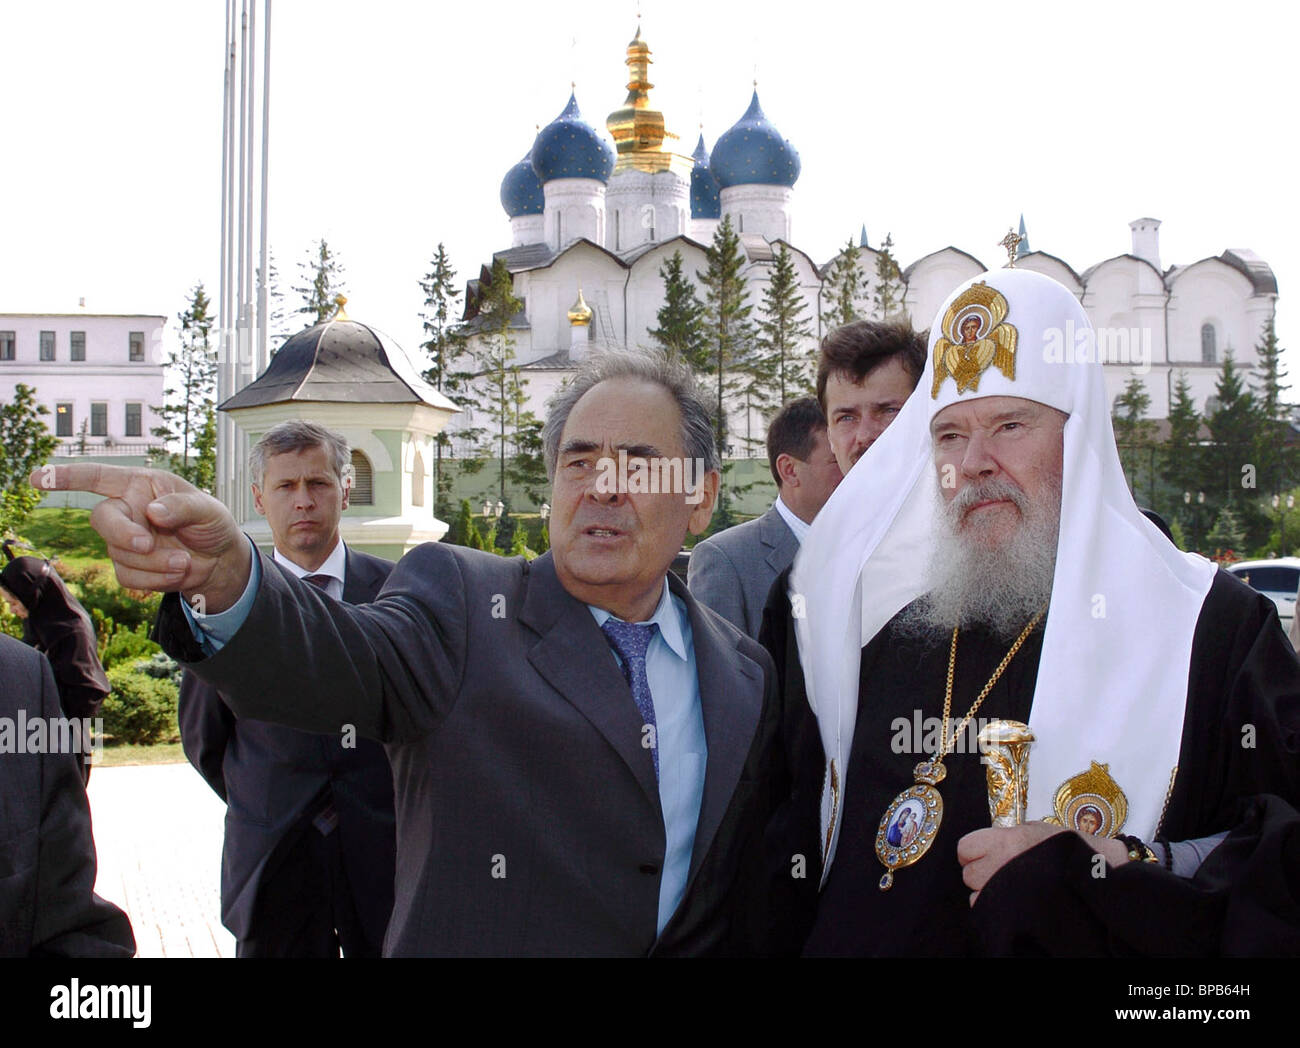 Does Russia need a Day of Accord and Reconciliation